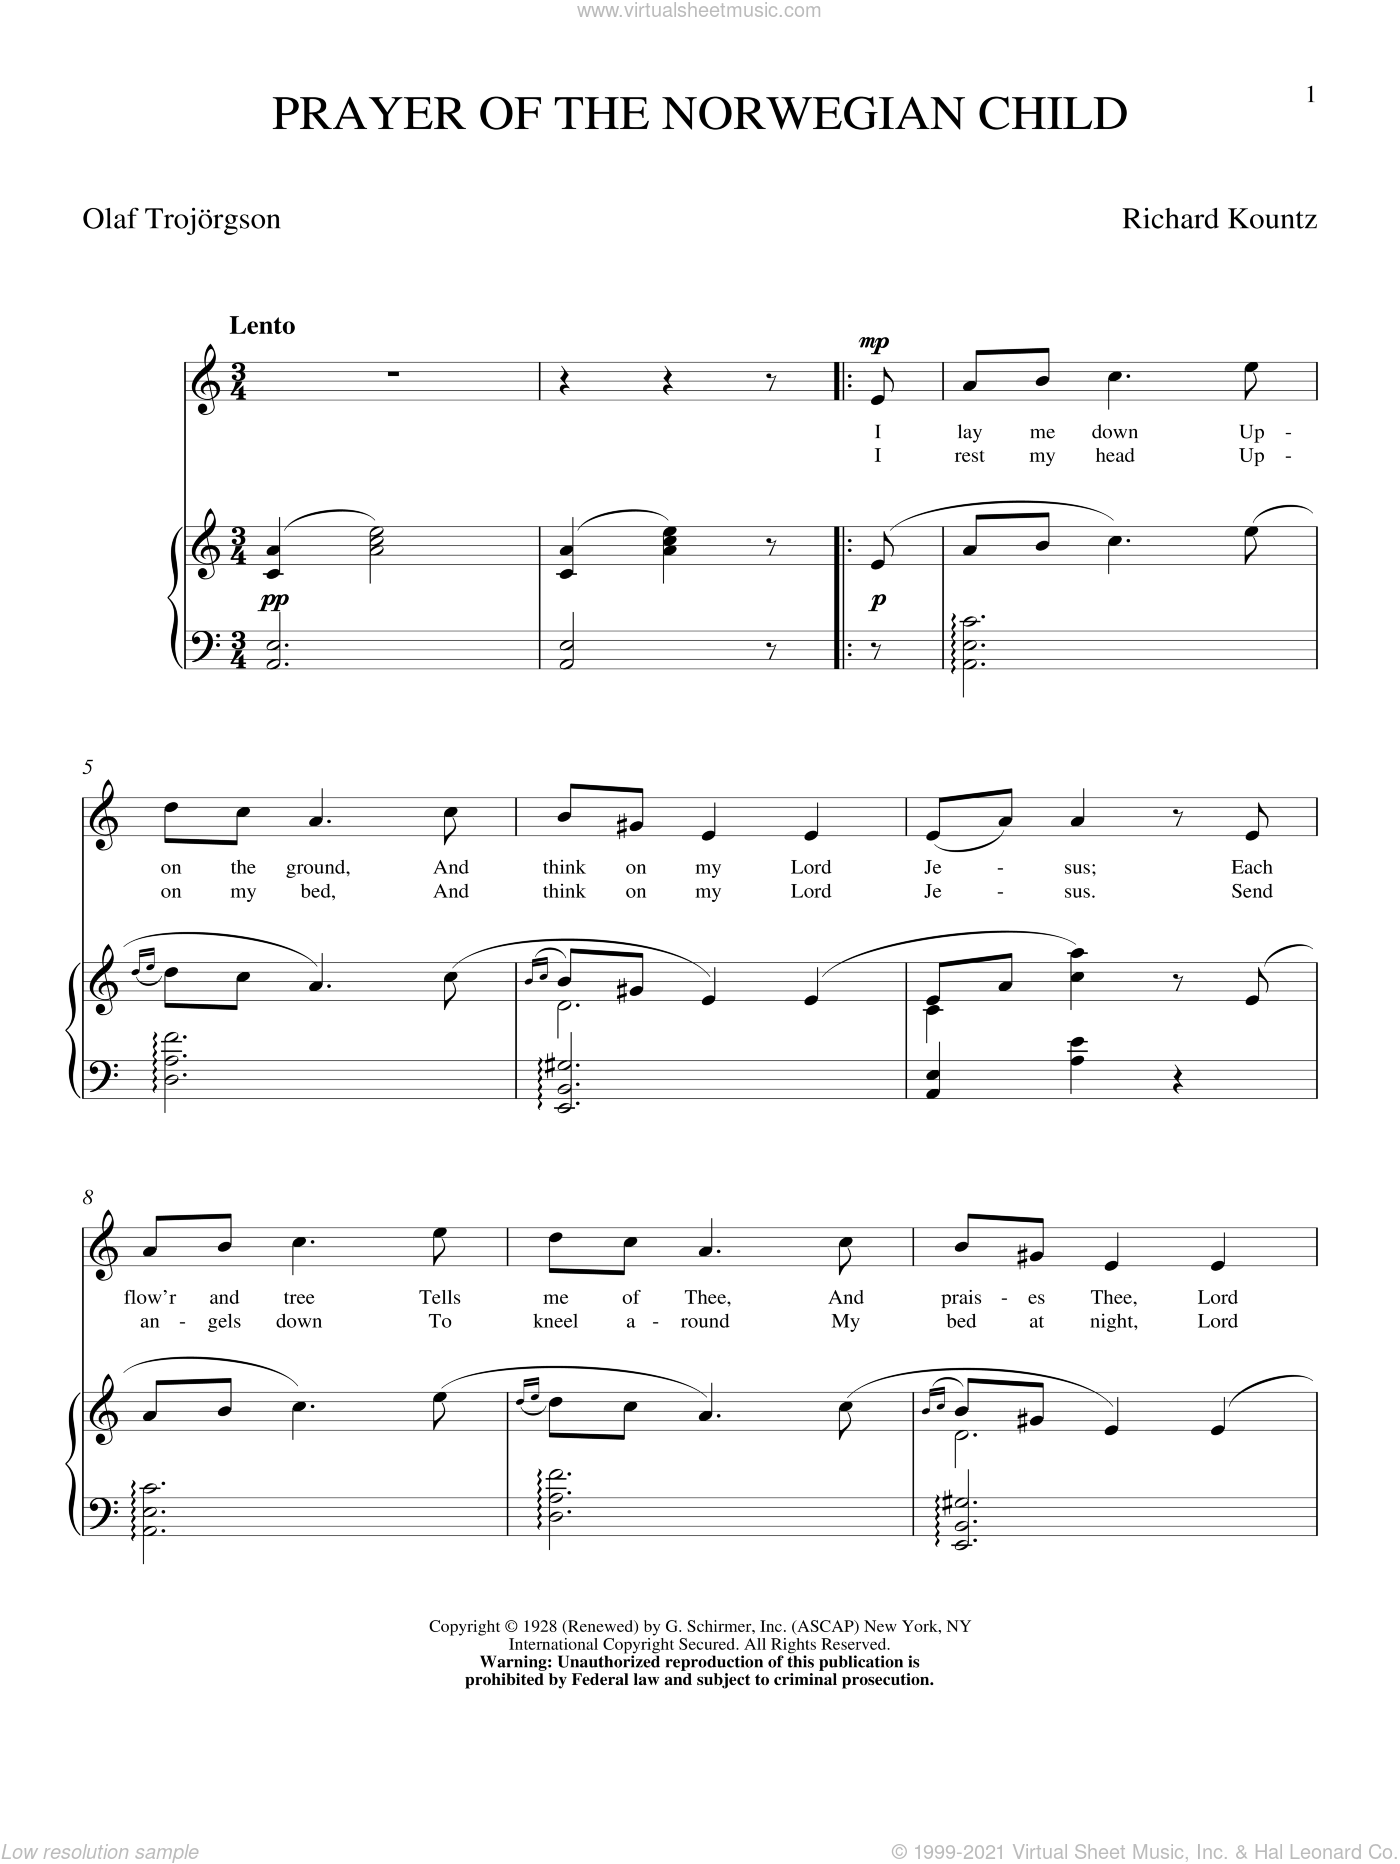 Prayer Of The Norwegian Child sheet music for voice and piano (High ) by Richard Kountz, intermediate. Score Image Preview.